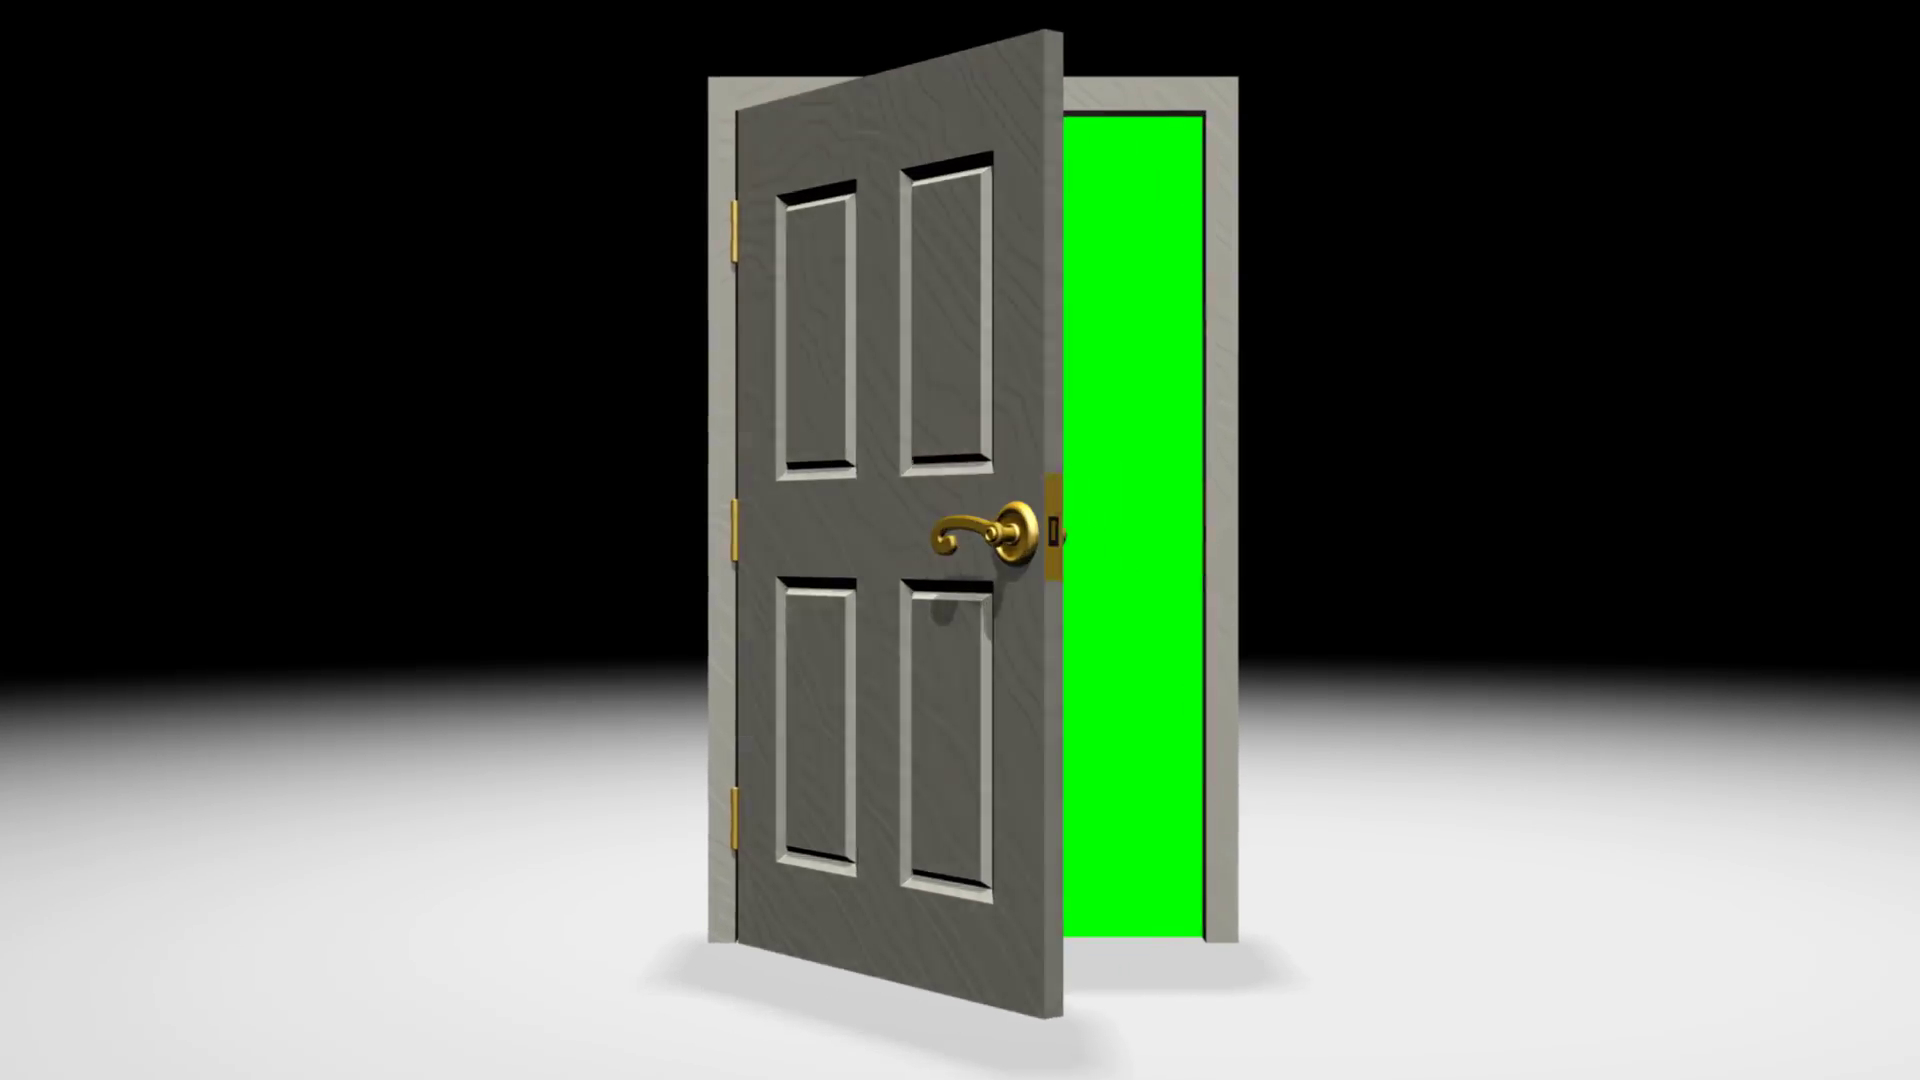 Door Opening Green Screen Transition 3d Motion Background intended for dimensions 1920 X 1080